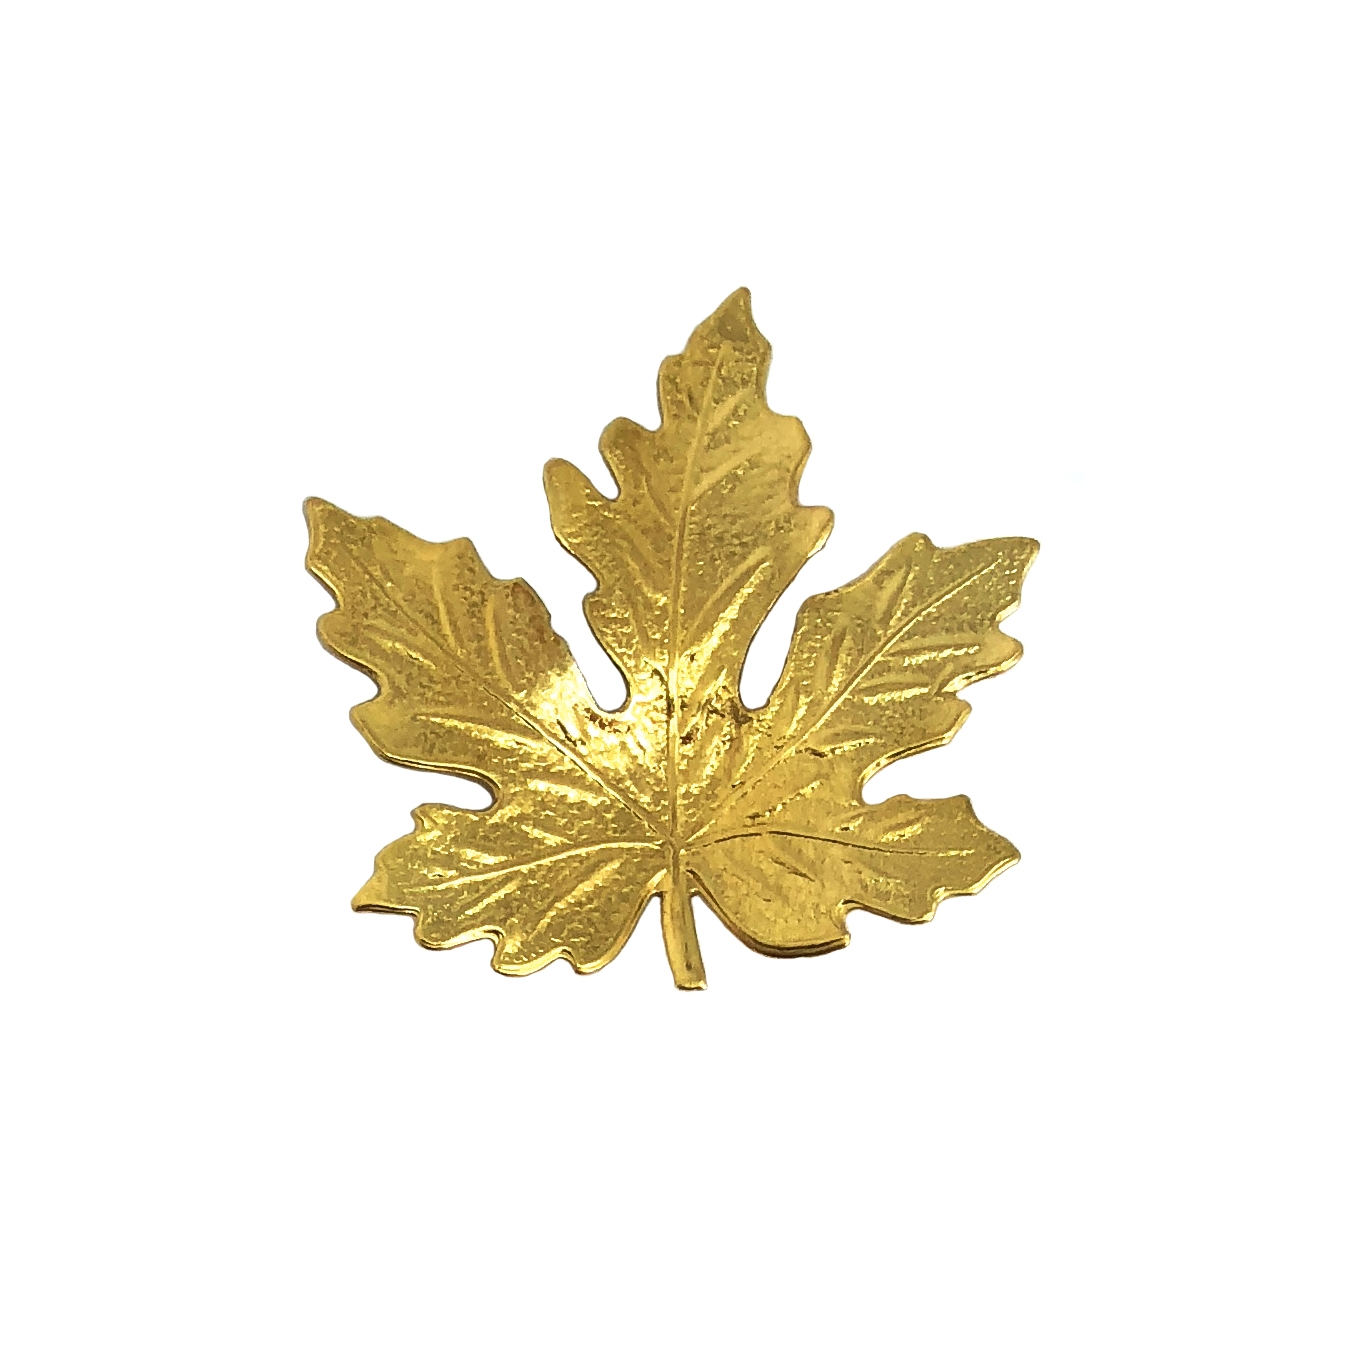 brass leaves, jewelry making, raw brass, B'sue Boutiques, nickel free, jewelry supplies, US made, vintage supplies, altered art jewelry, antique brass, 41mm, small maple leaf, leaf, maple leaf, unplated brass, brass stampings, leaf stamping, 016265